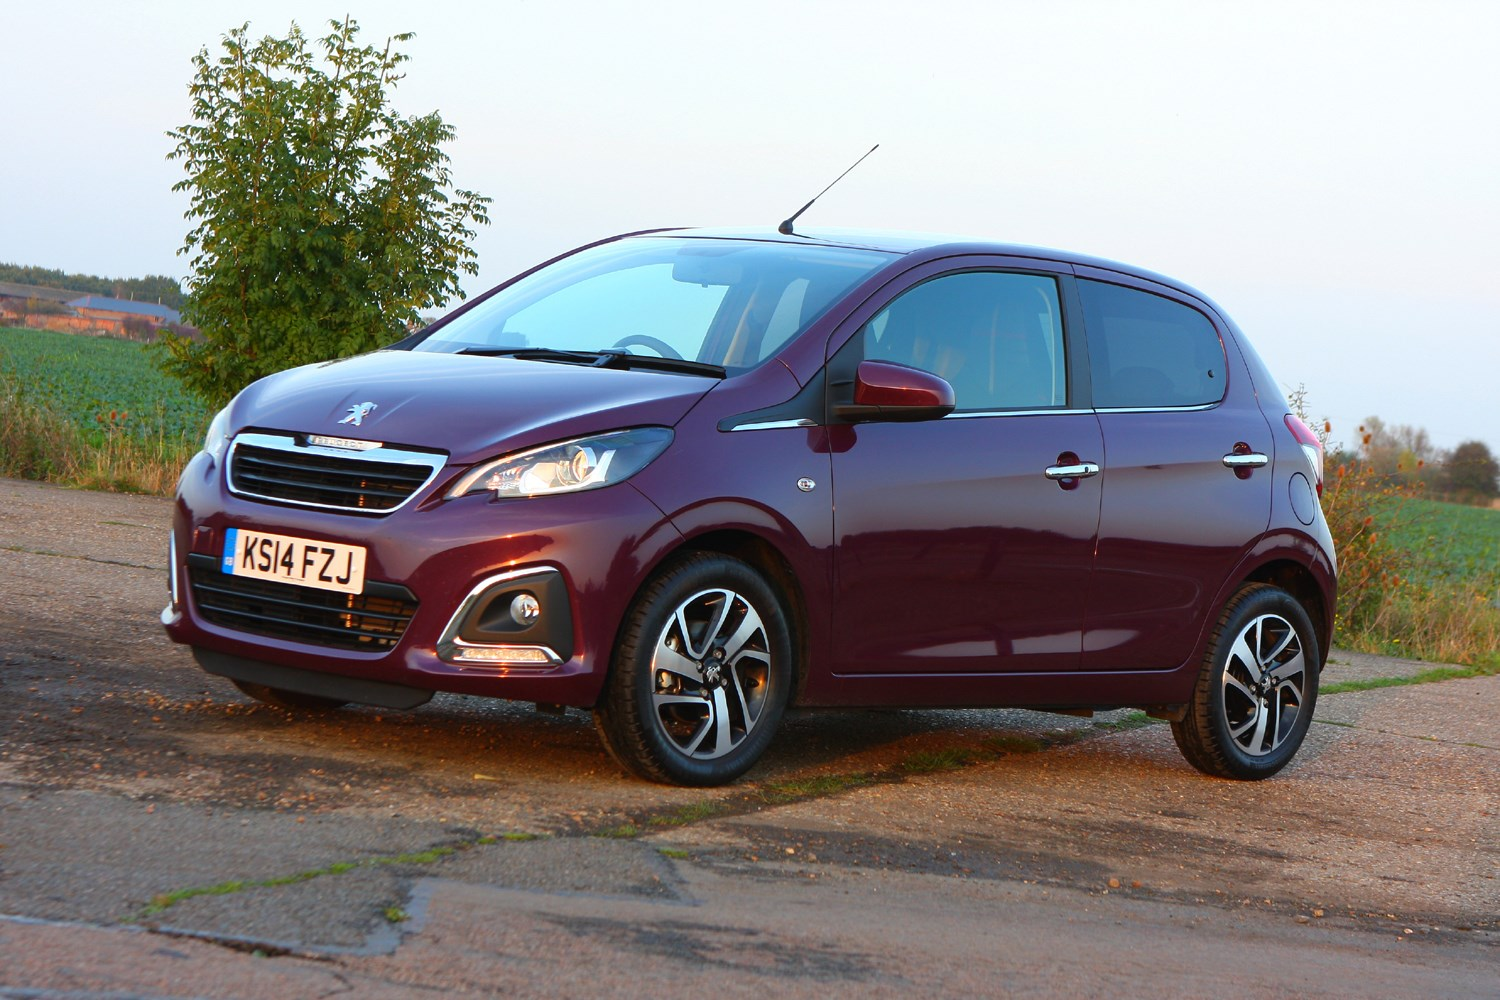 Peugeot 108 Hatchback (2014 - ) Photos | Parkers